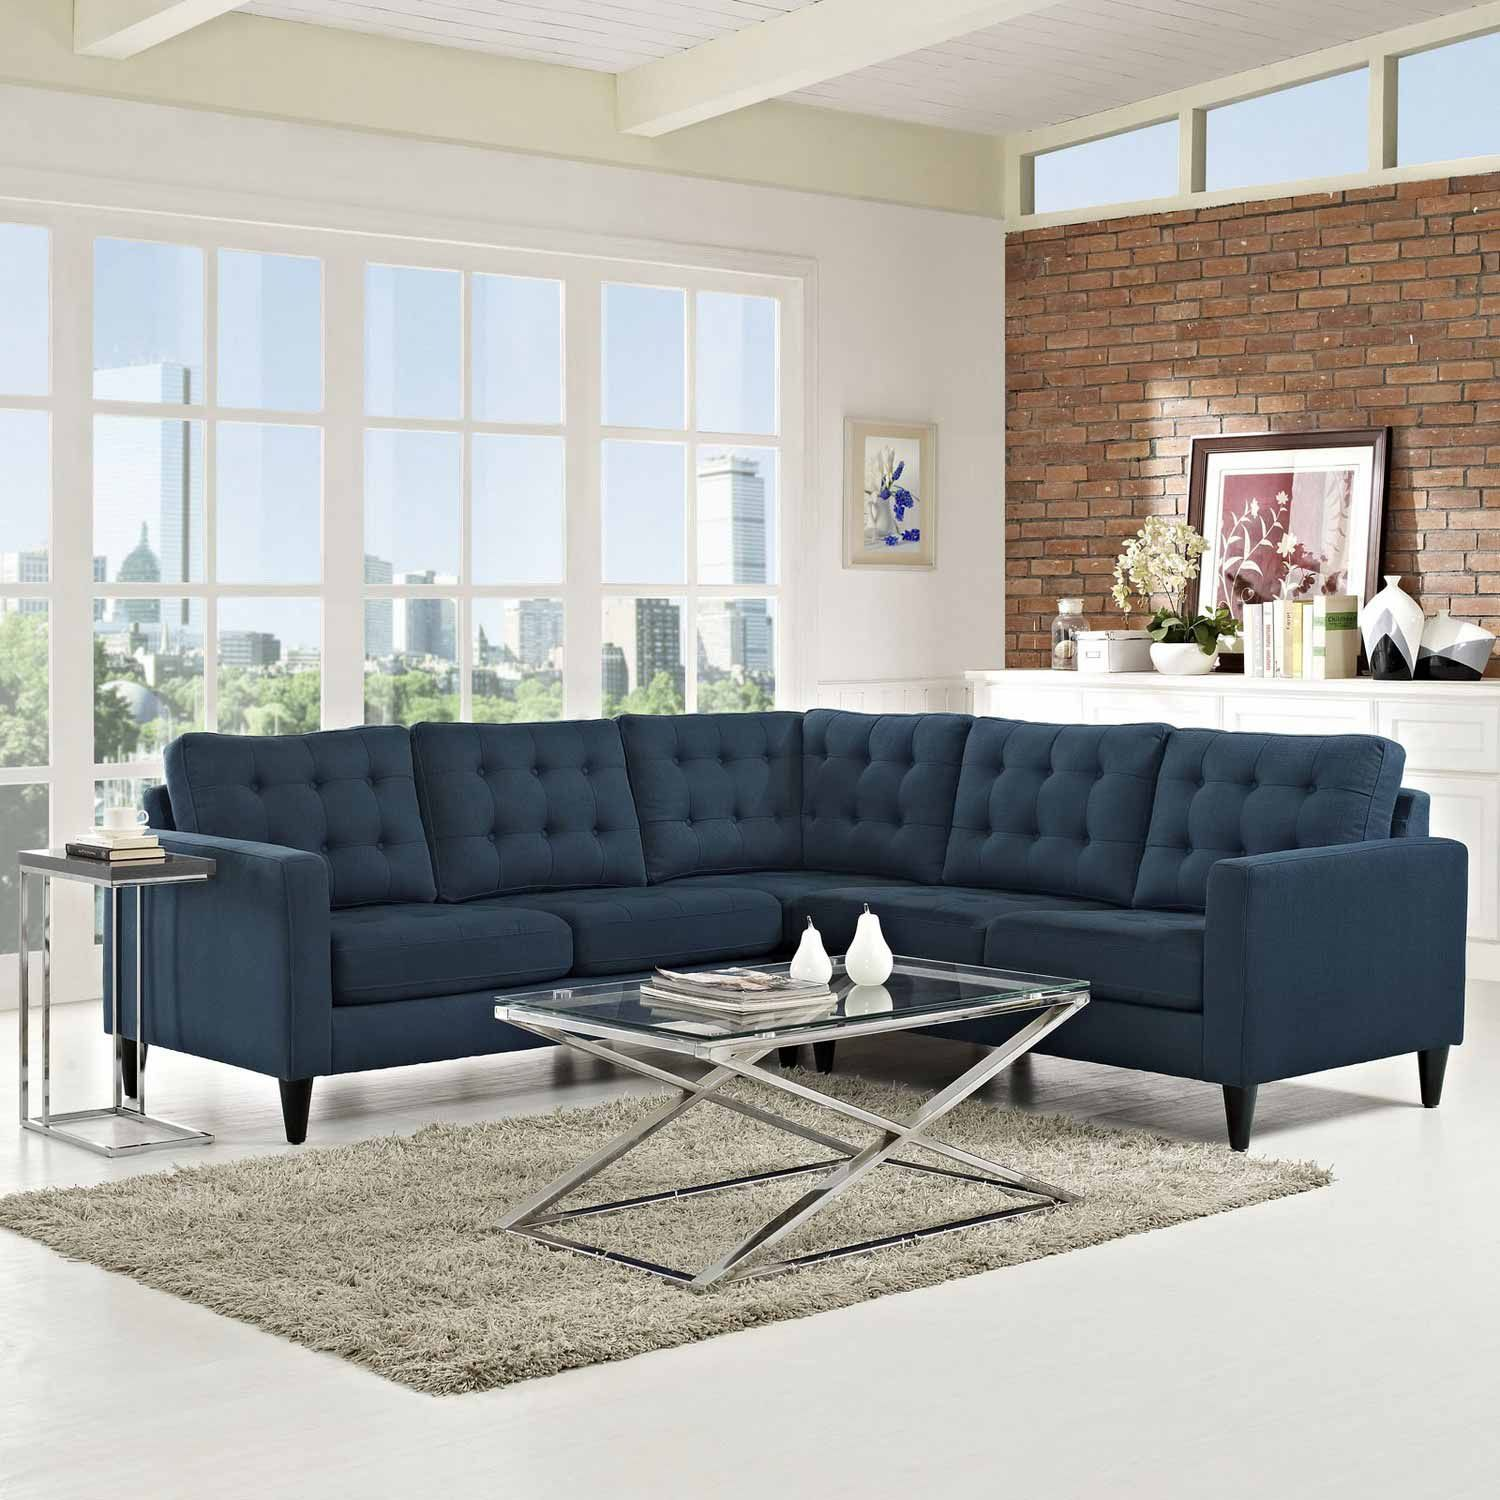 Priscilla EEI 1417NV Navy Blue Sectional Sofa | Sectional